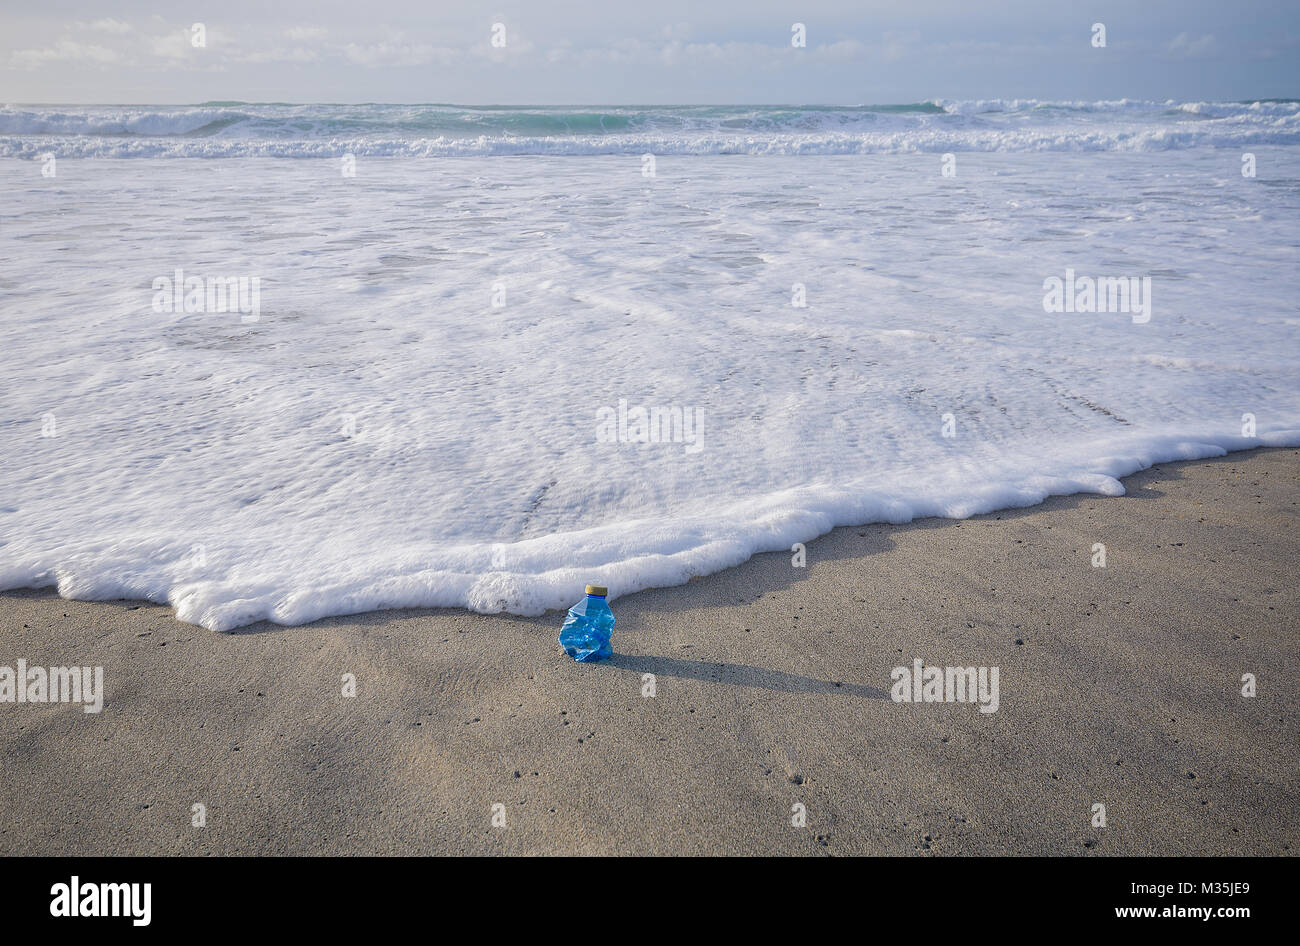 Single use plastic bottle washed up on beach - Stock Image